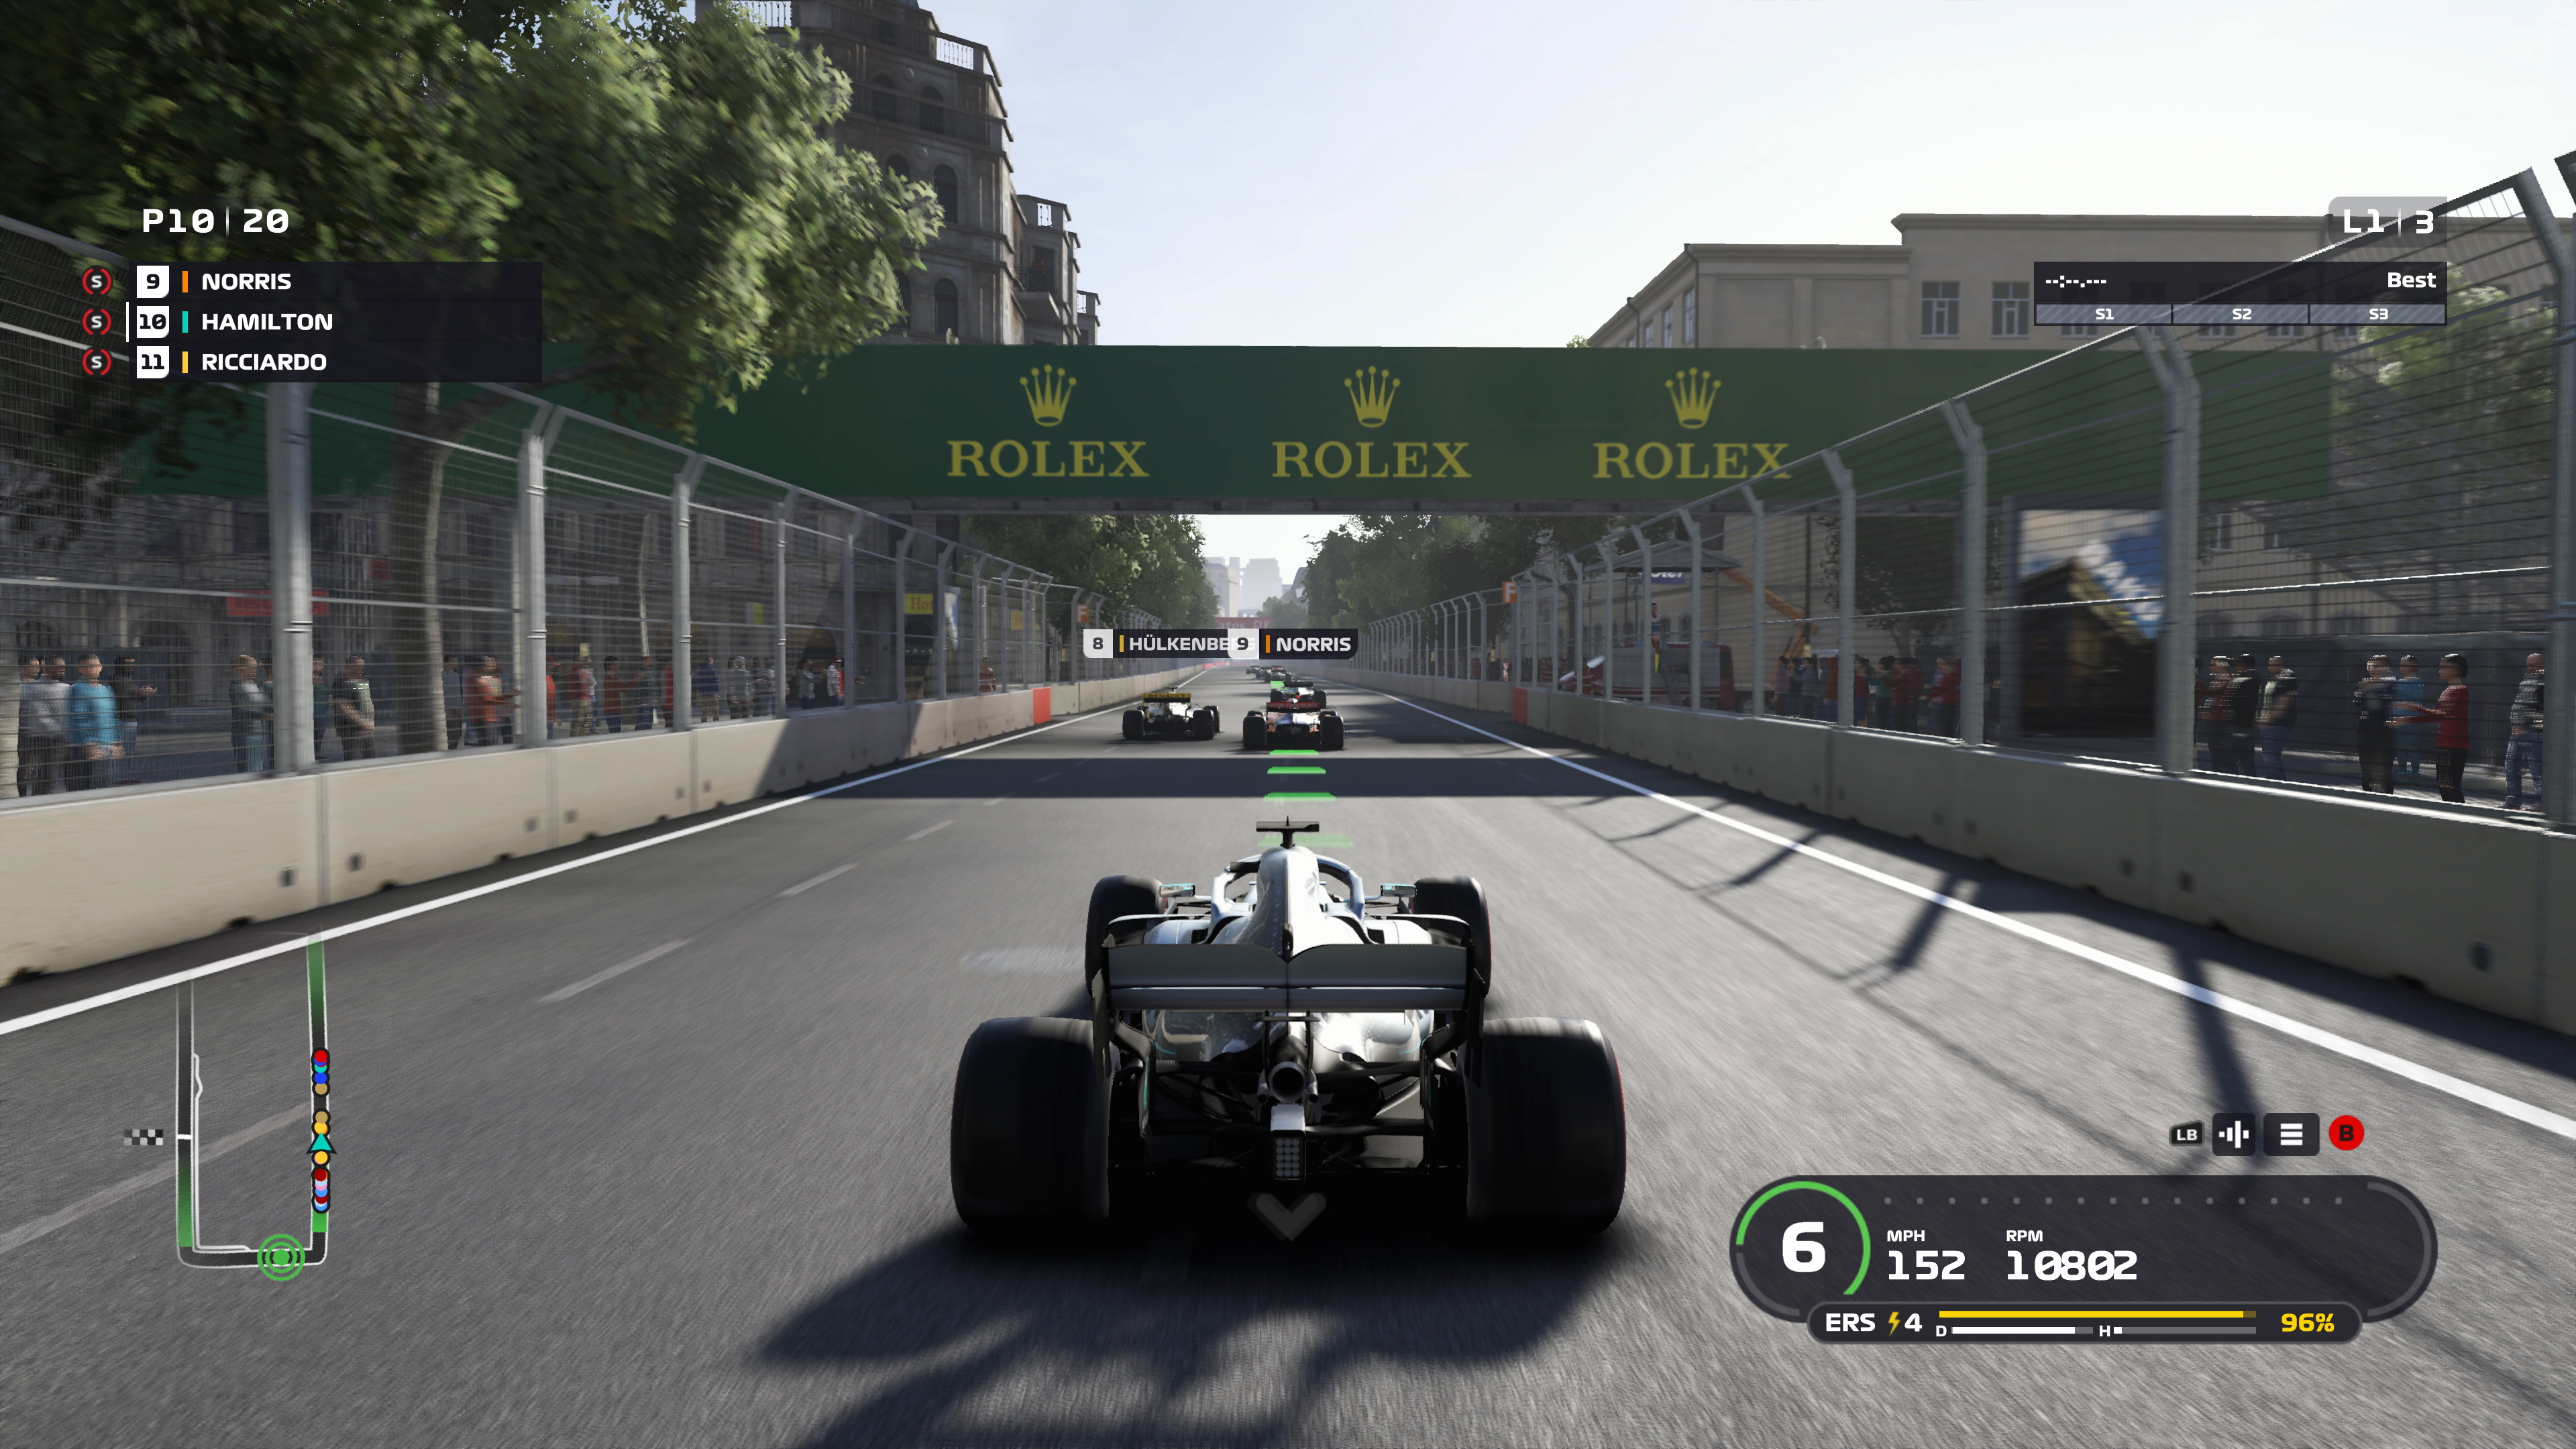 F1 2019 delivers Codemasters' most realistic visuals yet